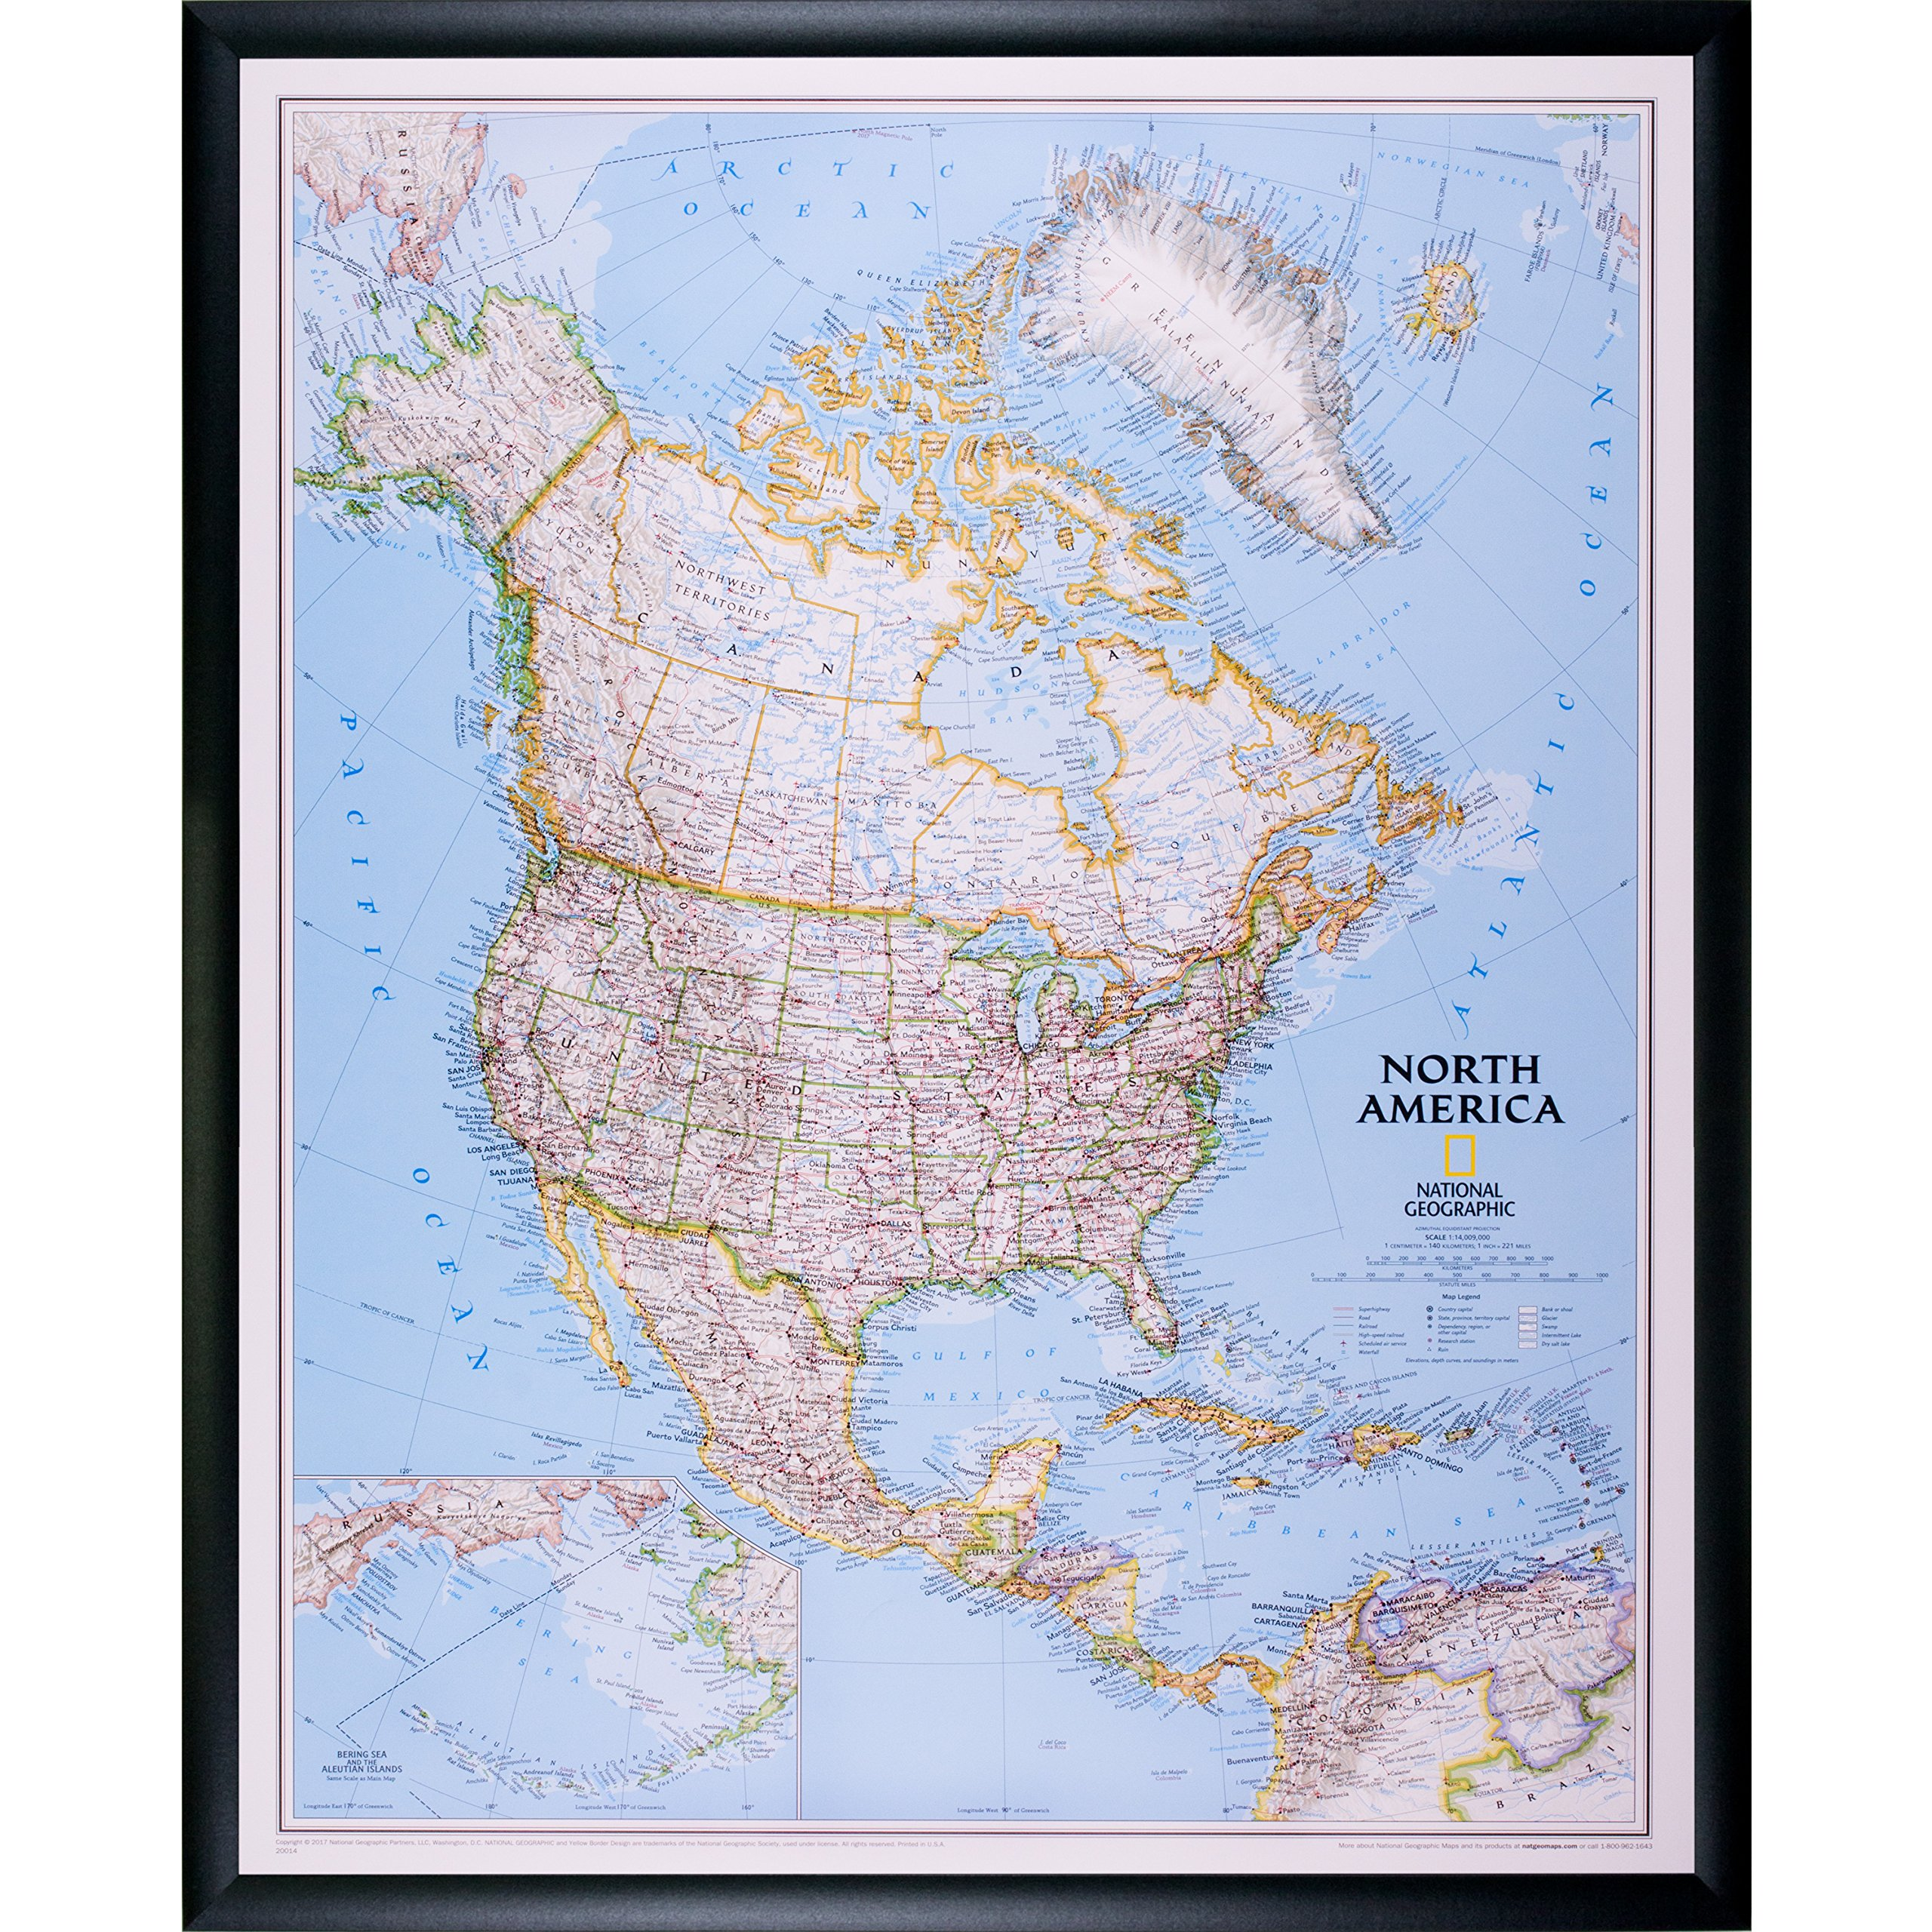 Craig Frames Wayfarer, Classic North America Push Pin Travel Map, Black Frame and Pins, 24 x 30 Inch by Craig Frames